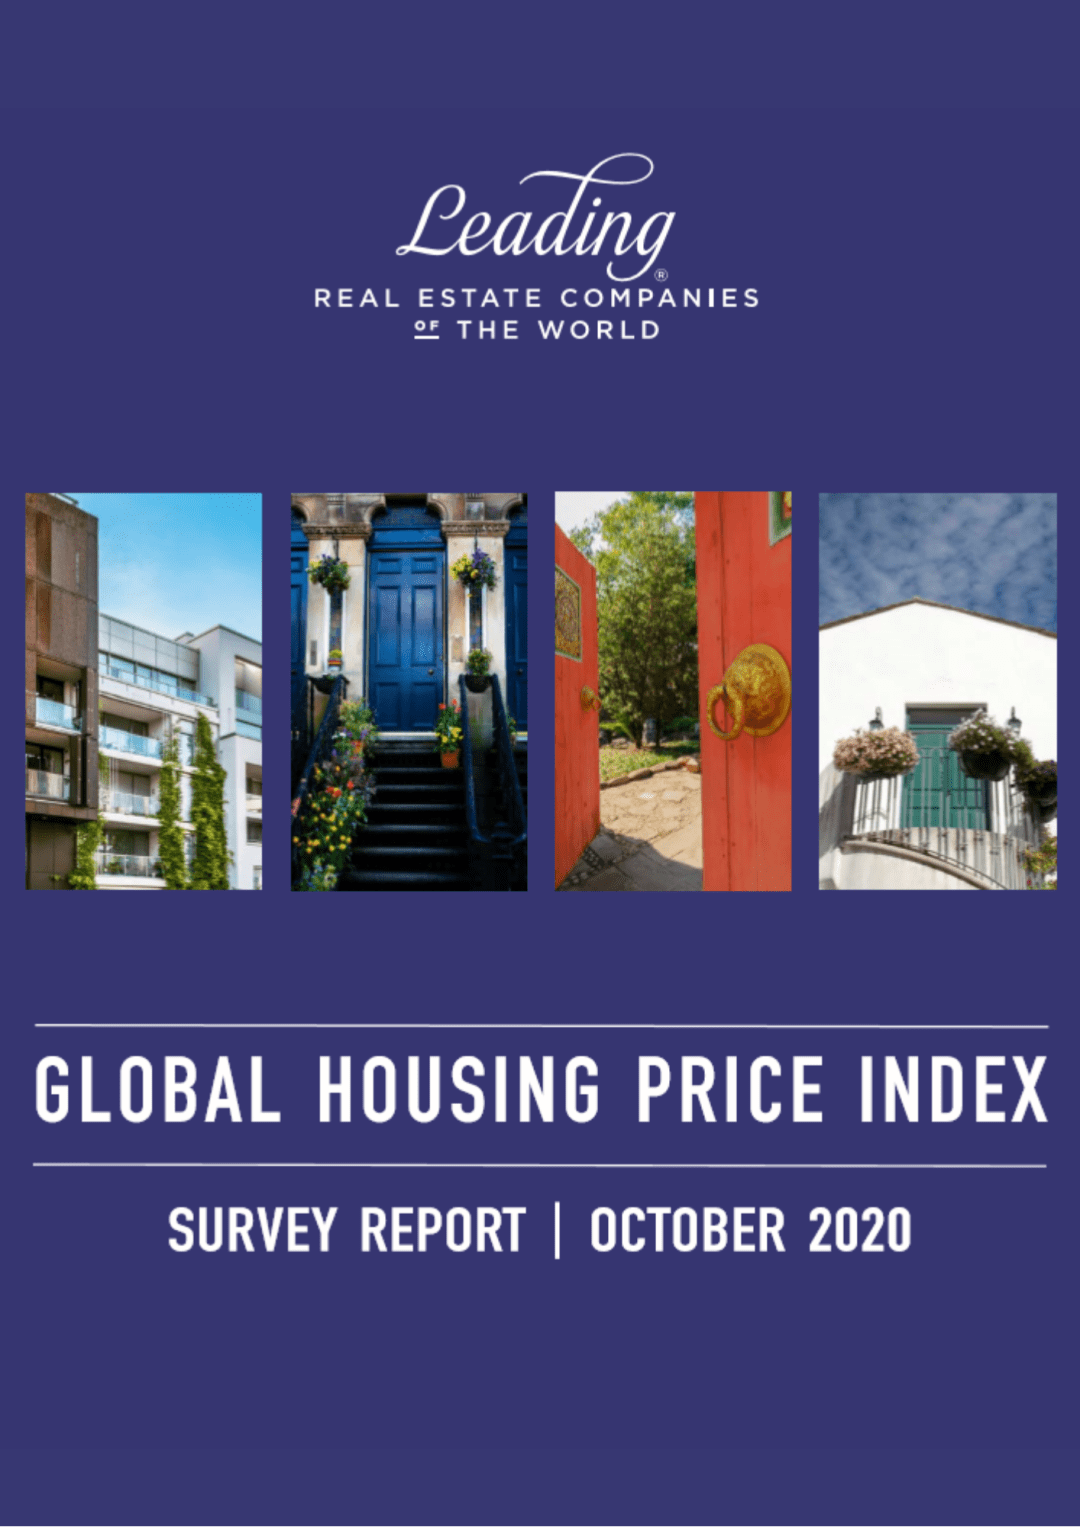 Global Housing Price Index by Luxury Portfolio, Smiths Gore BVI Realty